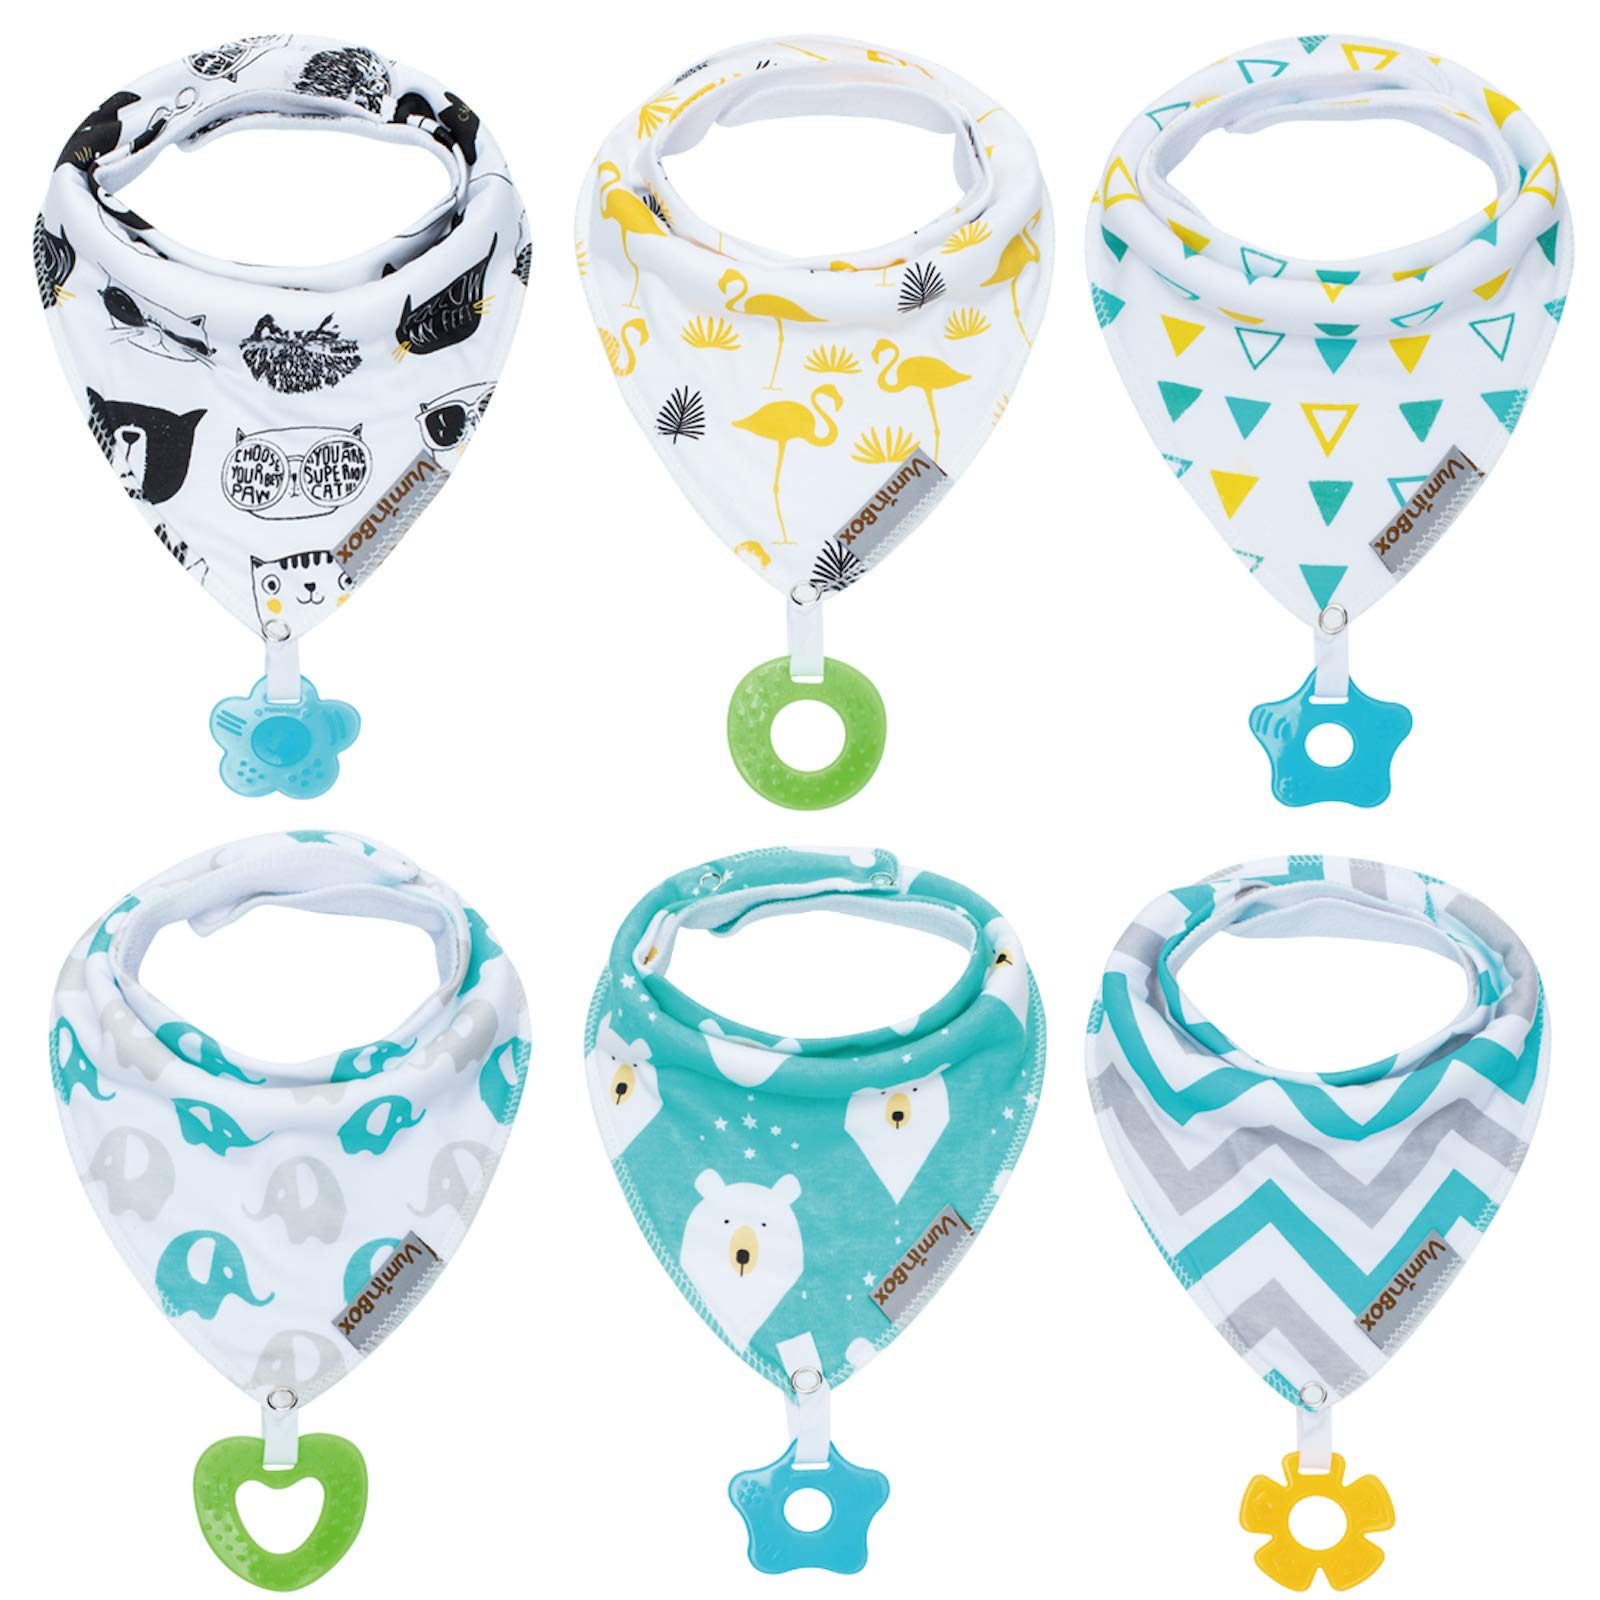 Cotton With Dummy Clip 2 Silicone Baby Teething//Drooling//Weaning Bandana Bibs